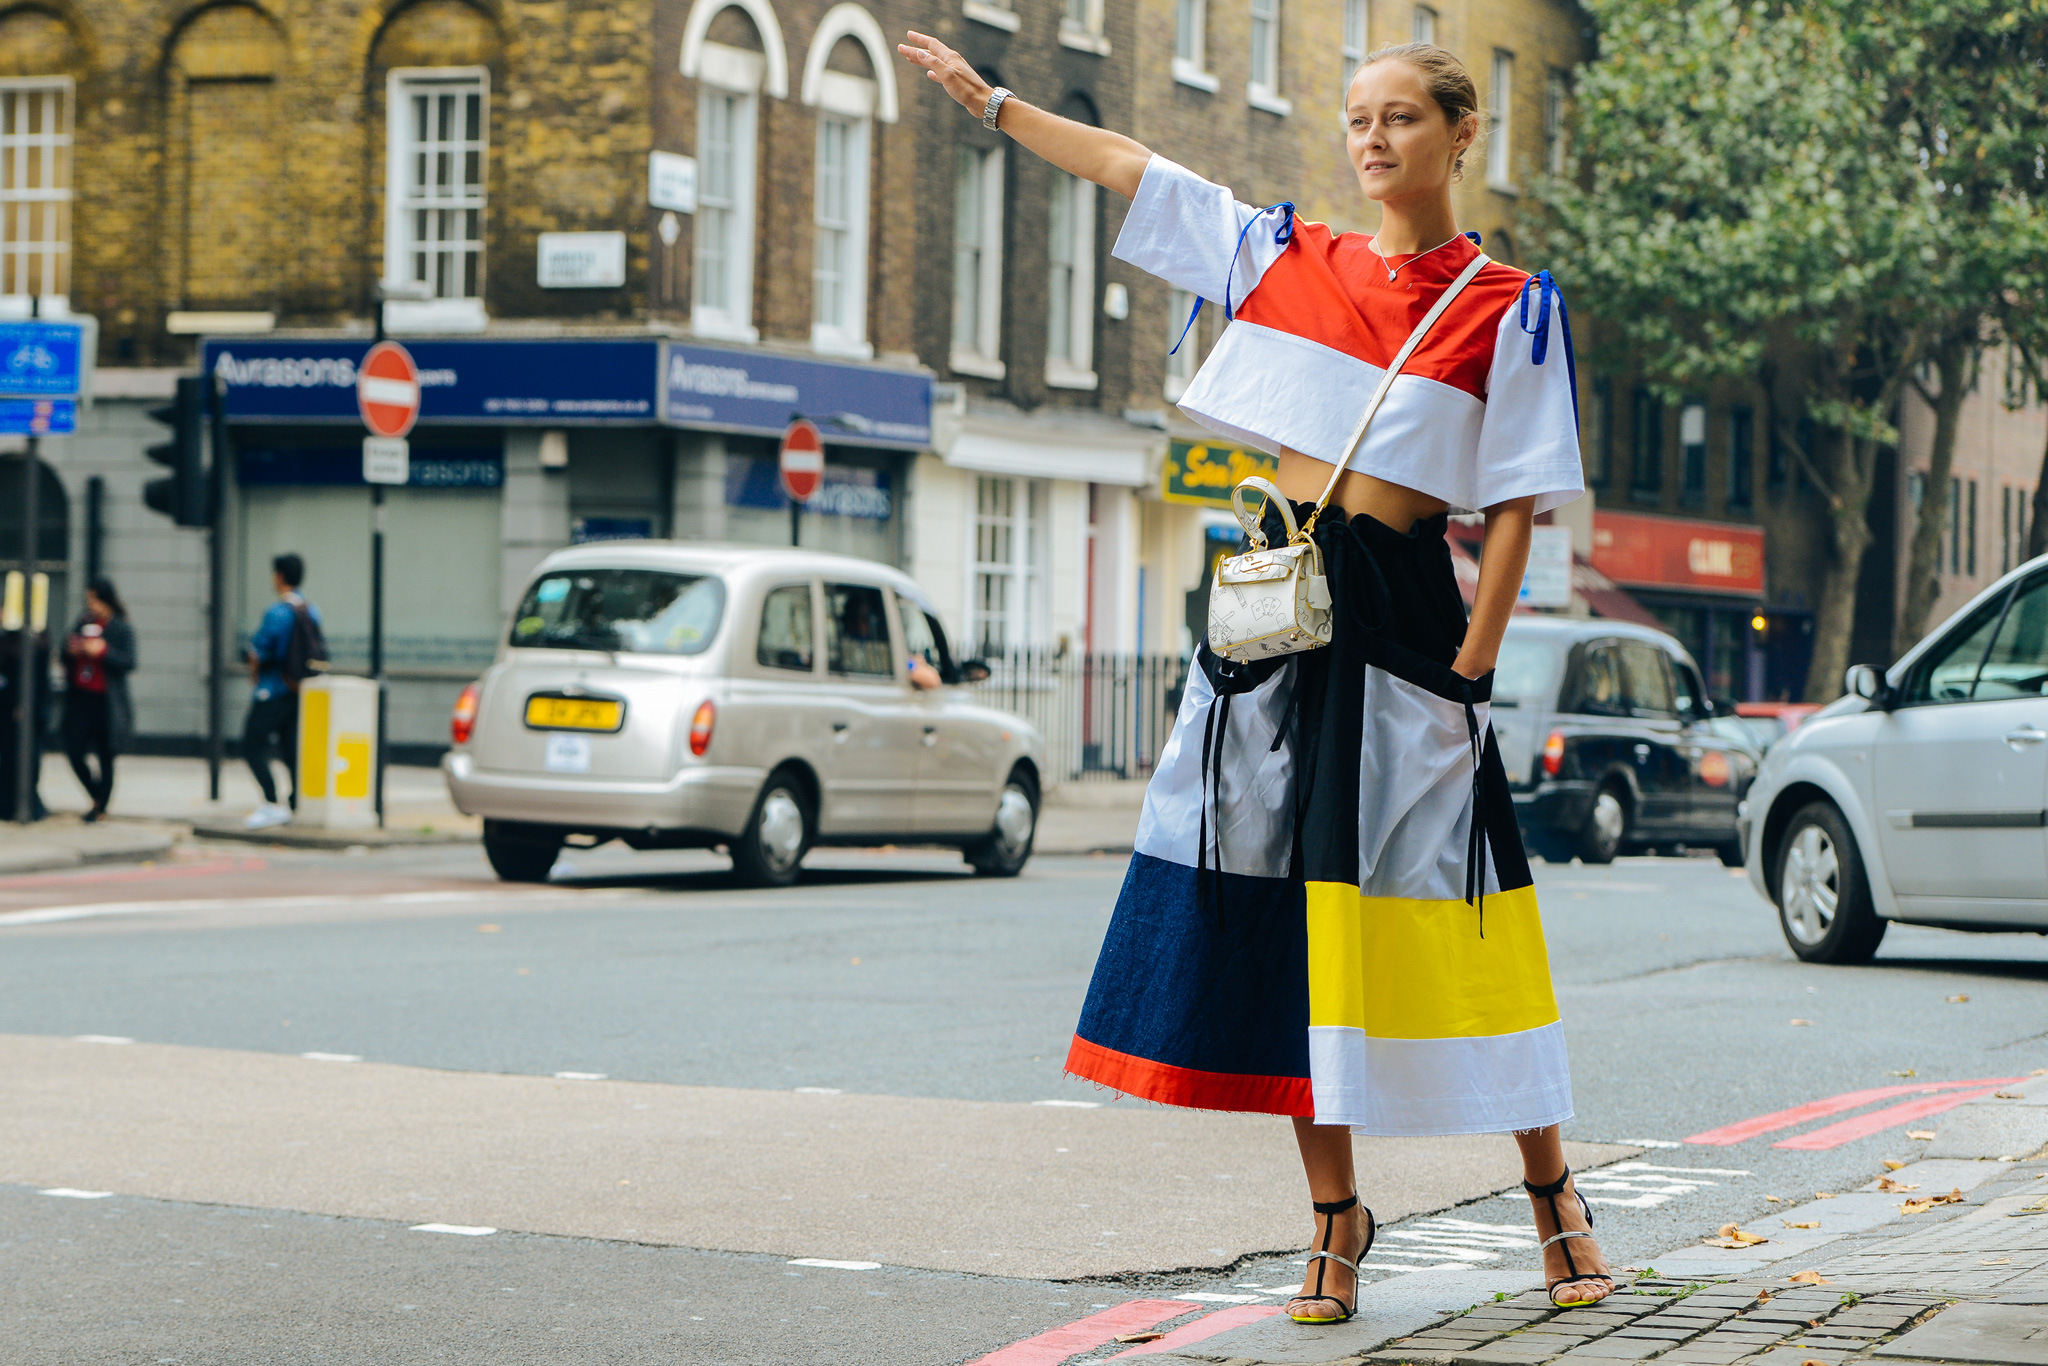 primary-colors-mondrian-inspired-fashion-08.jpg